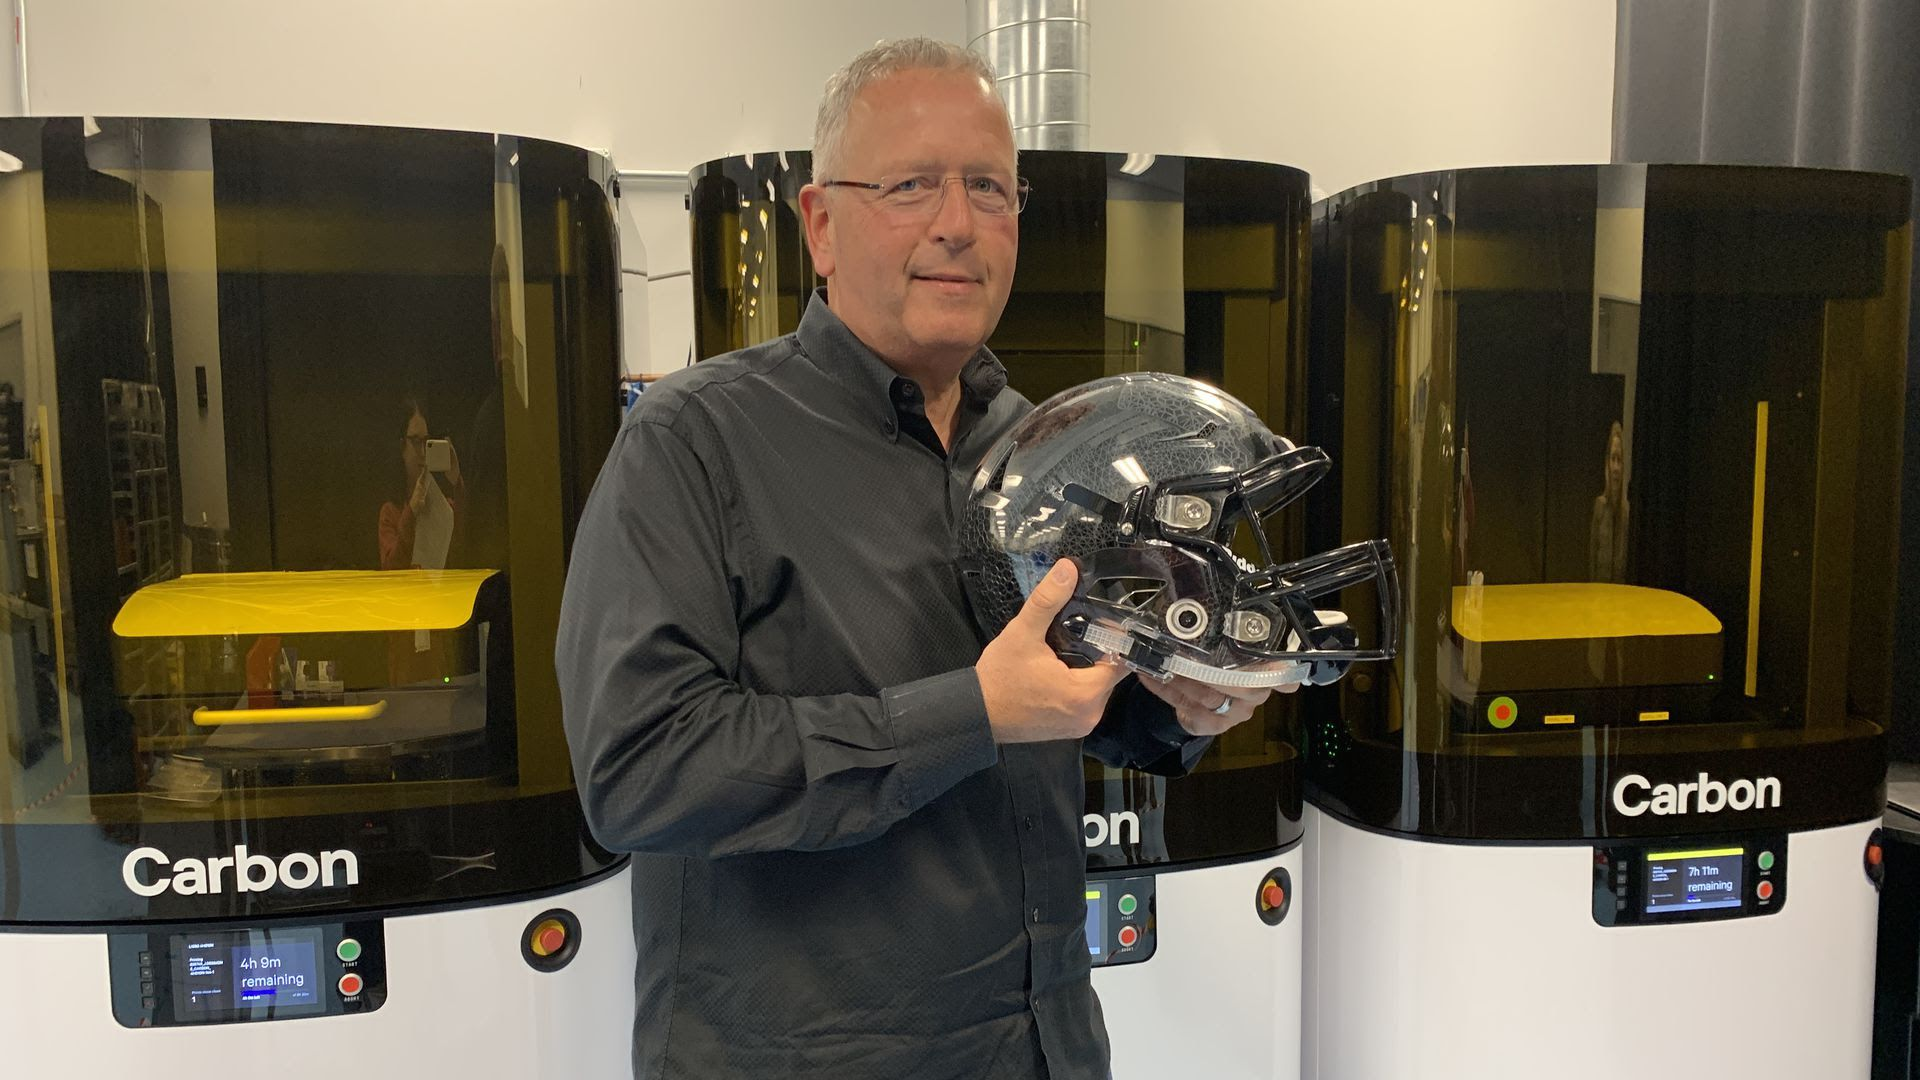 Carbon CEO Joe DeSimone holding a football helmet with 3D printed inserts using the new L1 printer.